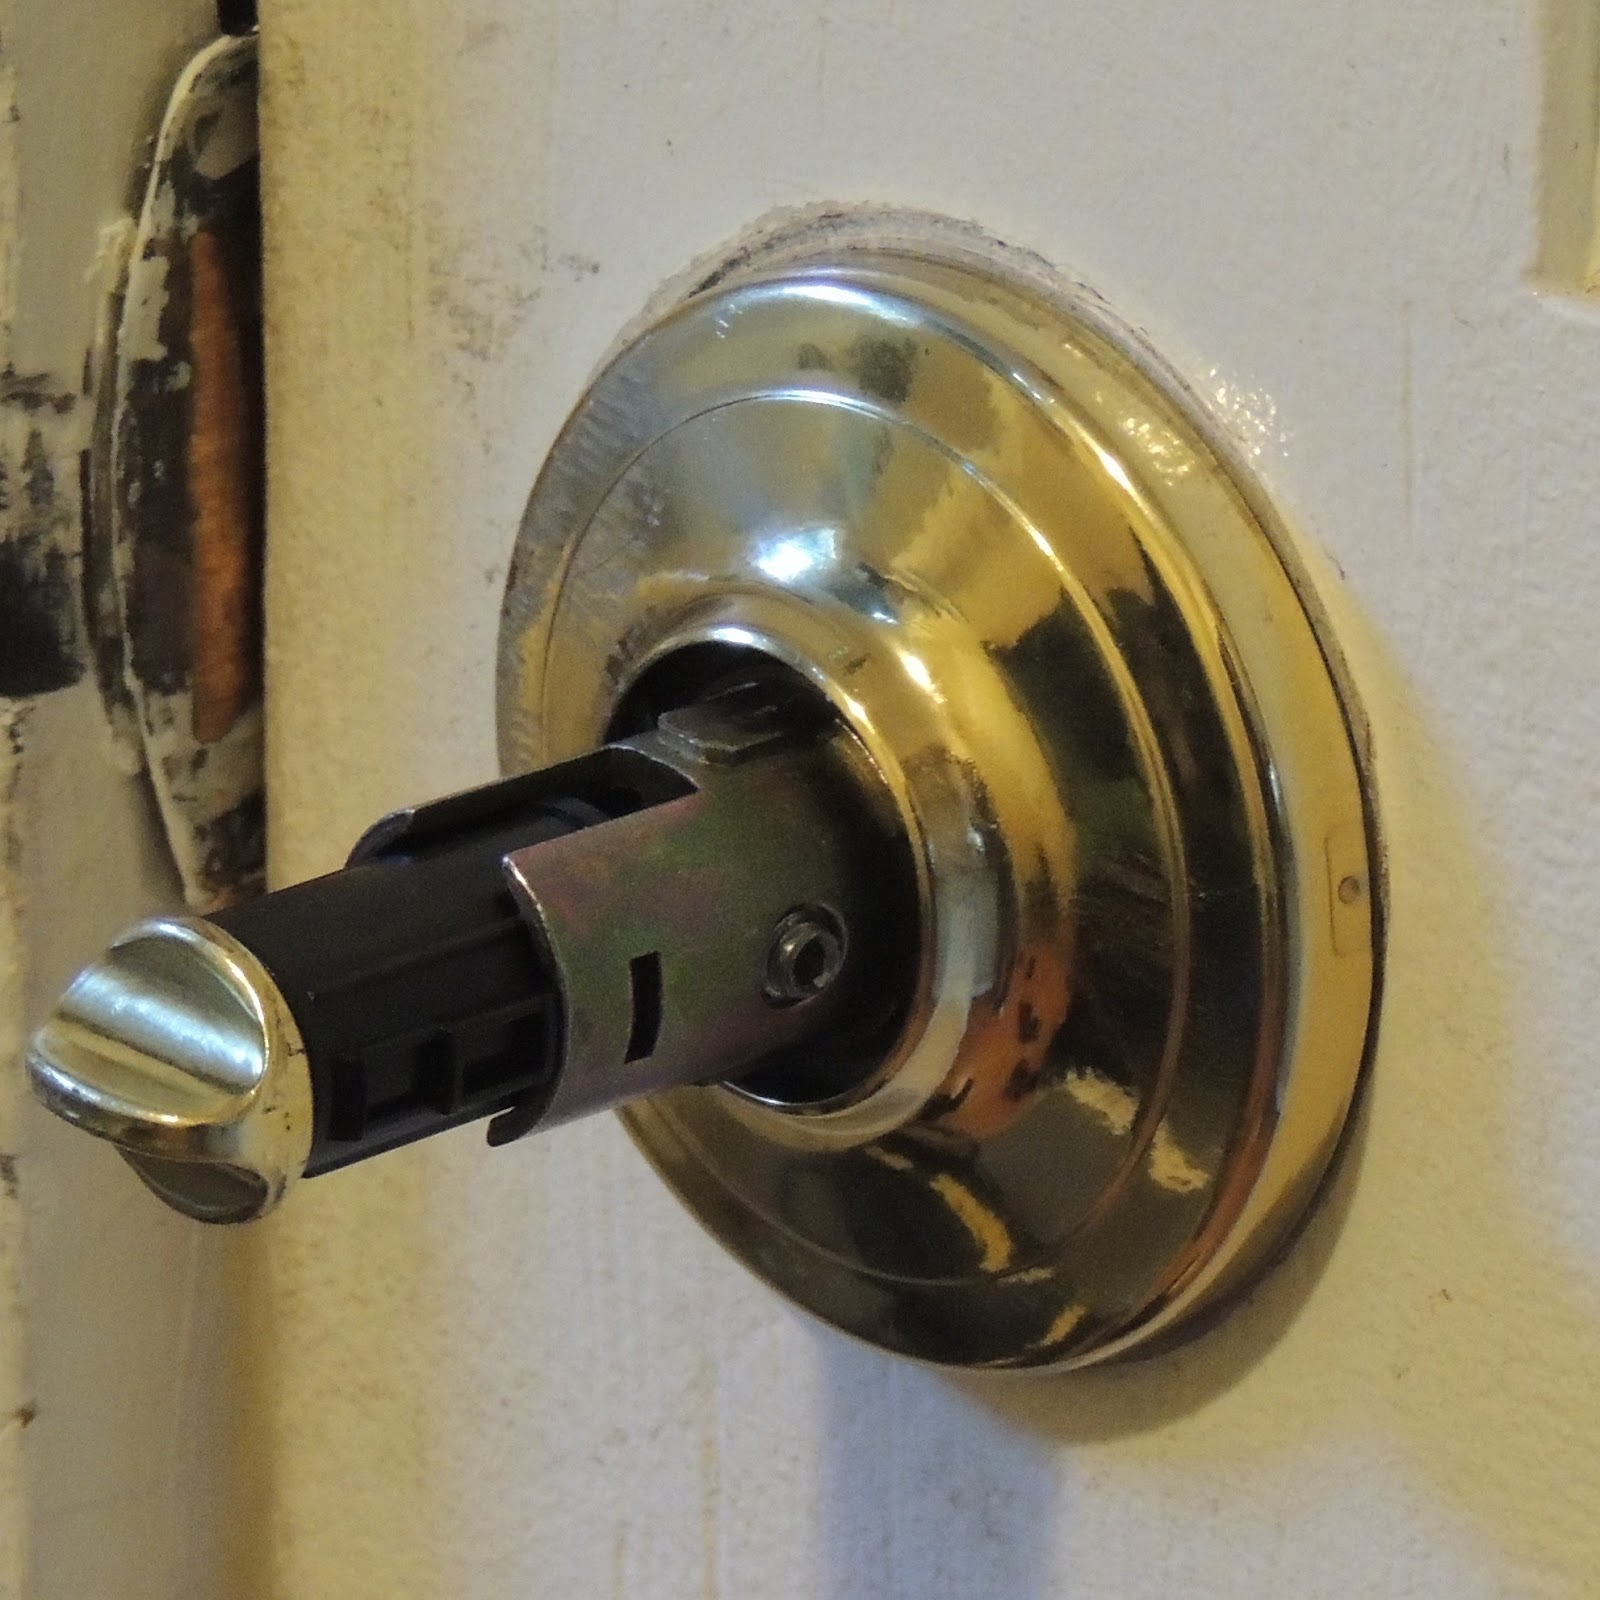 hight resolution of interior post of lock showing head of set screw that is screwed out to hold handle